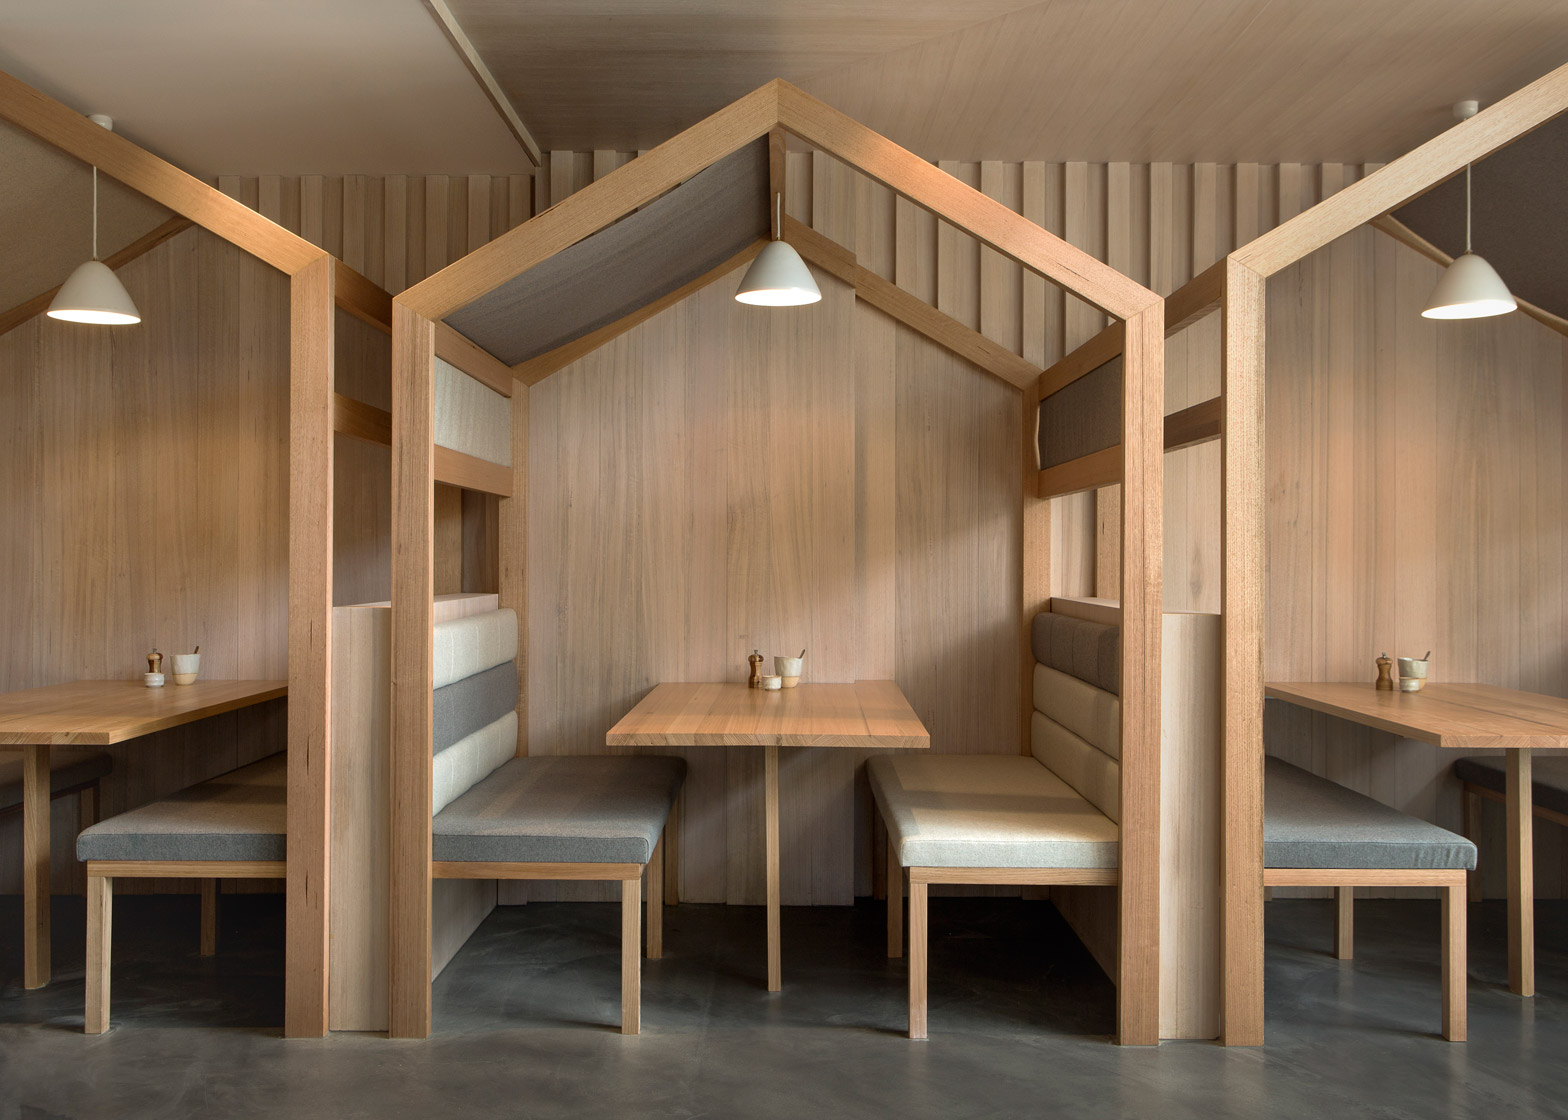 The Kitty Burns restaurant in Melbourne by Biasol Design Studio